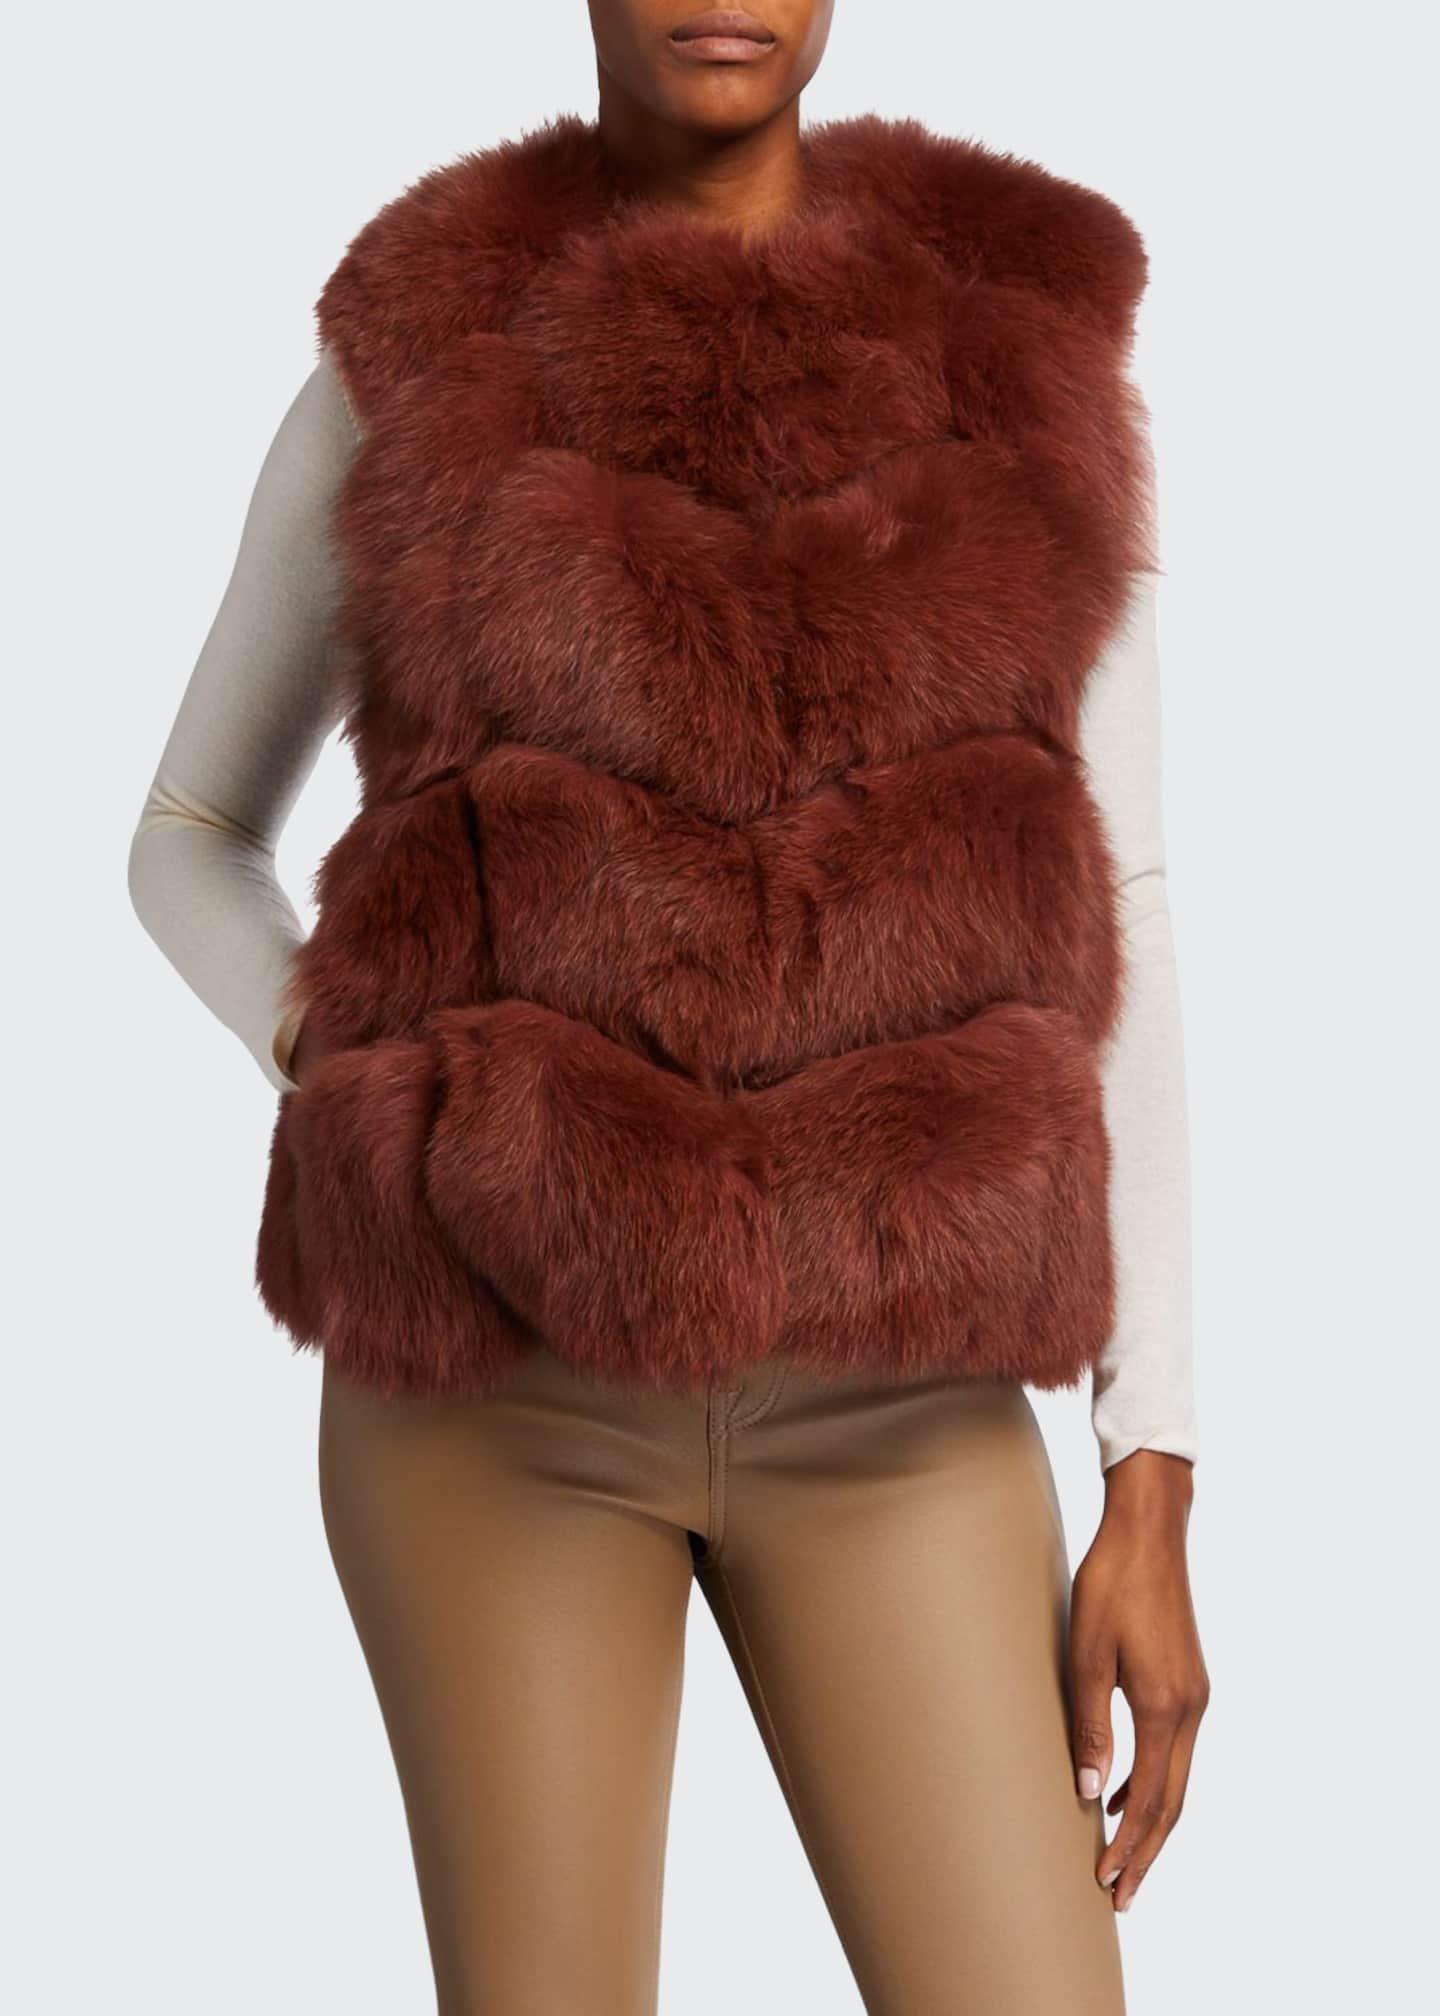 Adrienne Landau Let Out Fox Fur Vest